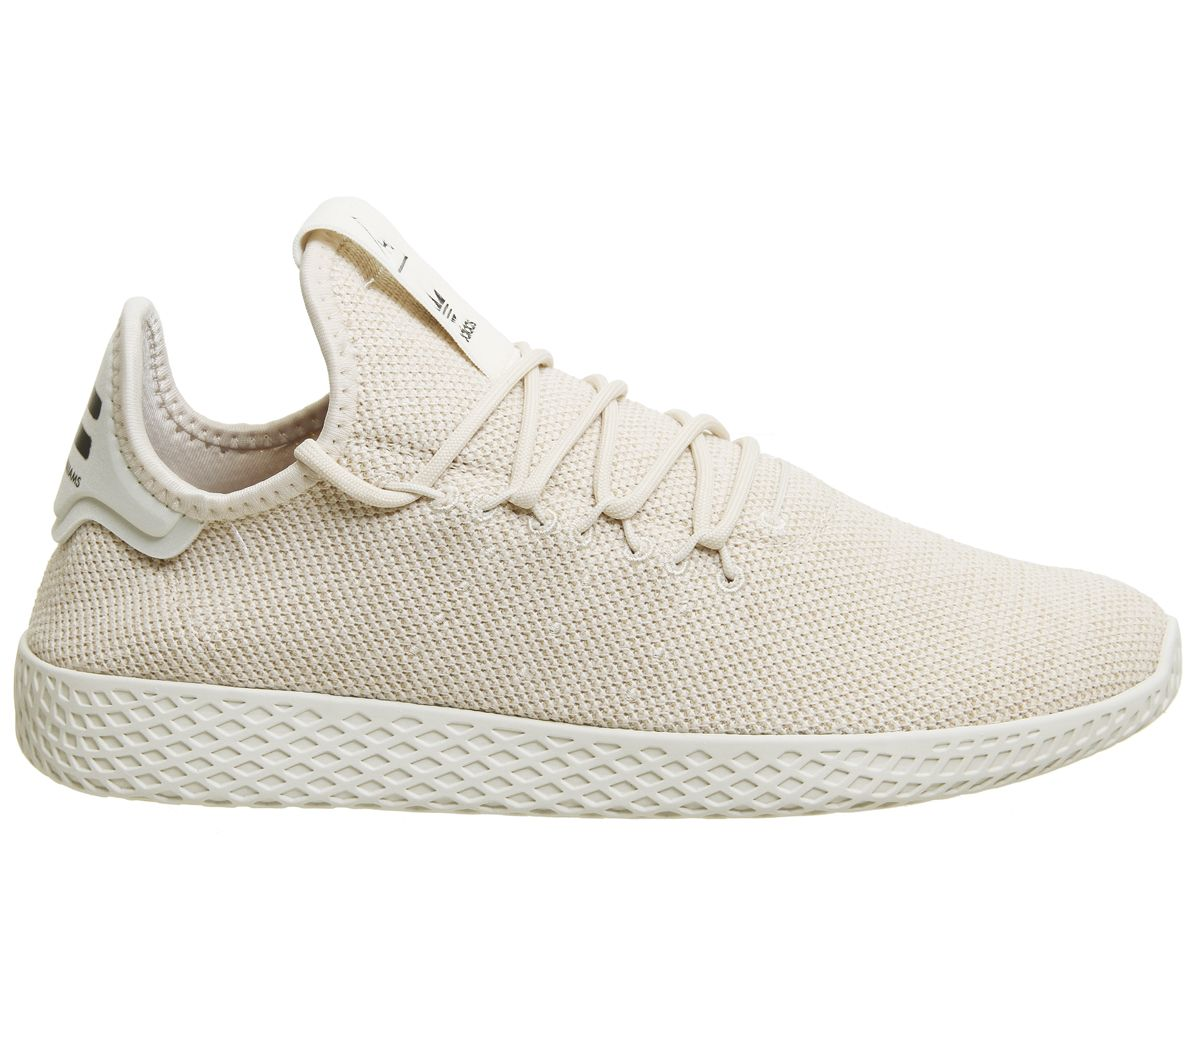 83205b80e adidas Pw Tennis Trainers Linen Chalk White - Unisex Sports